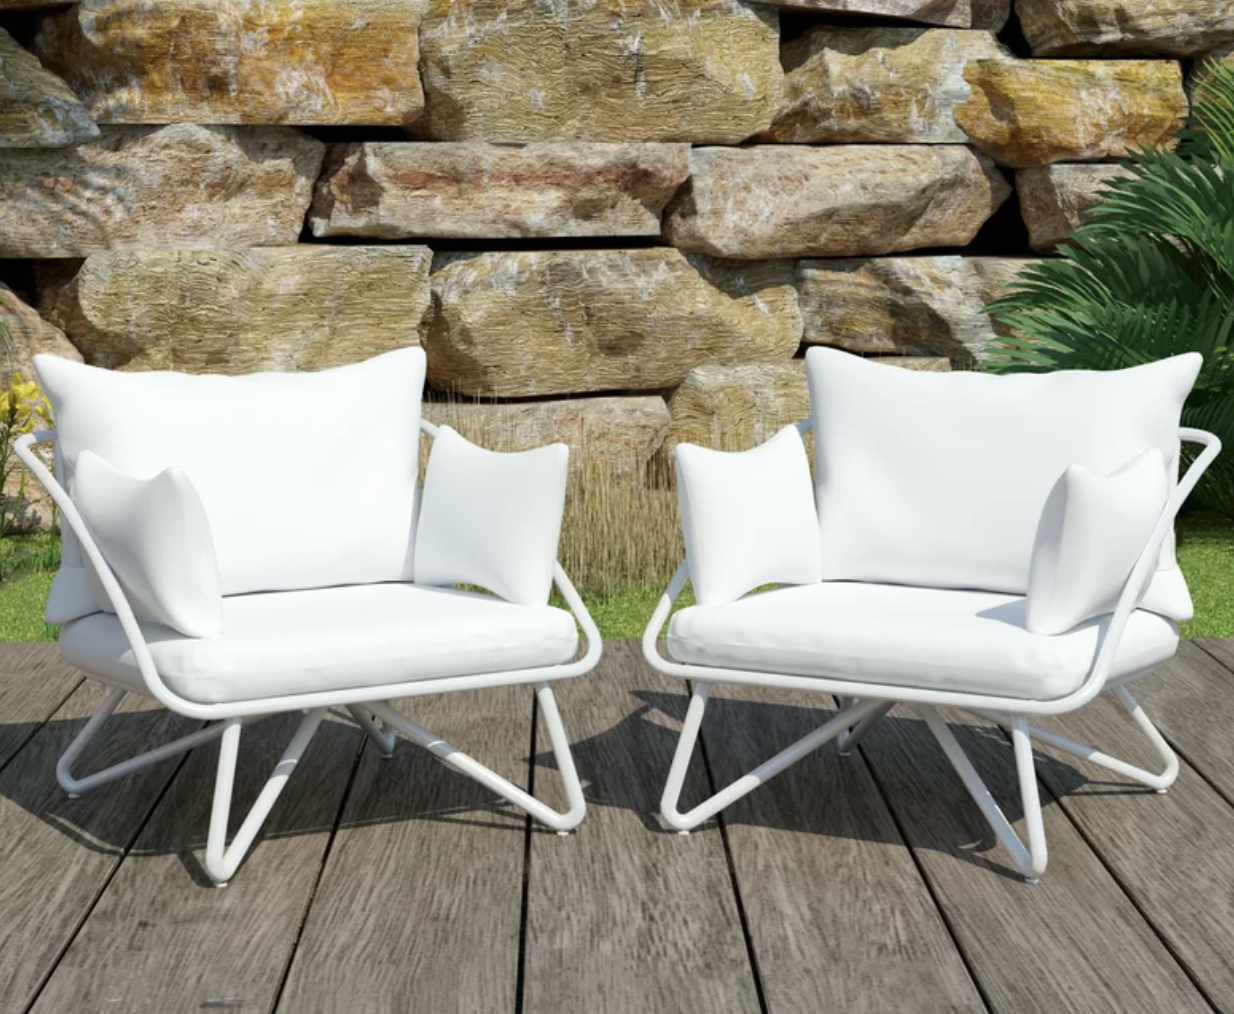 A pair of white patio chairs next to each other on a wooden porch